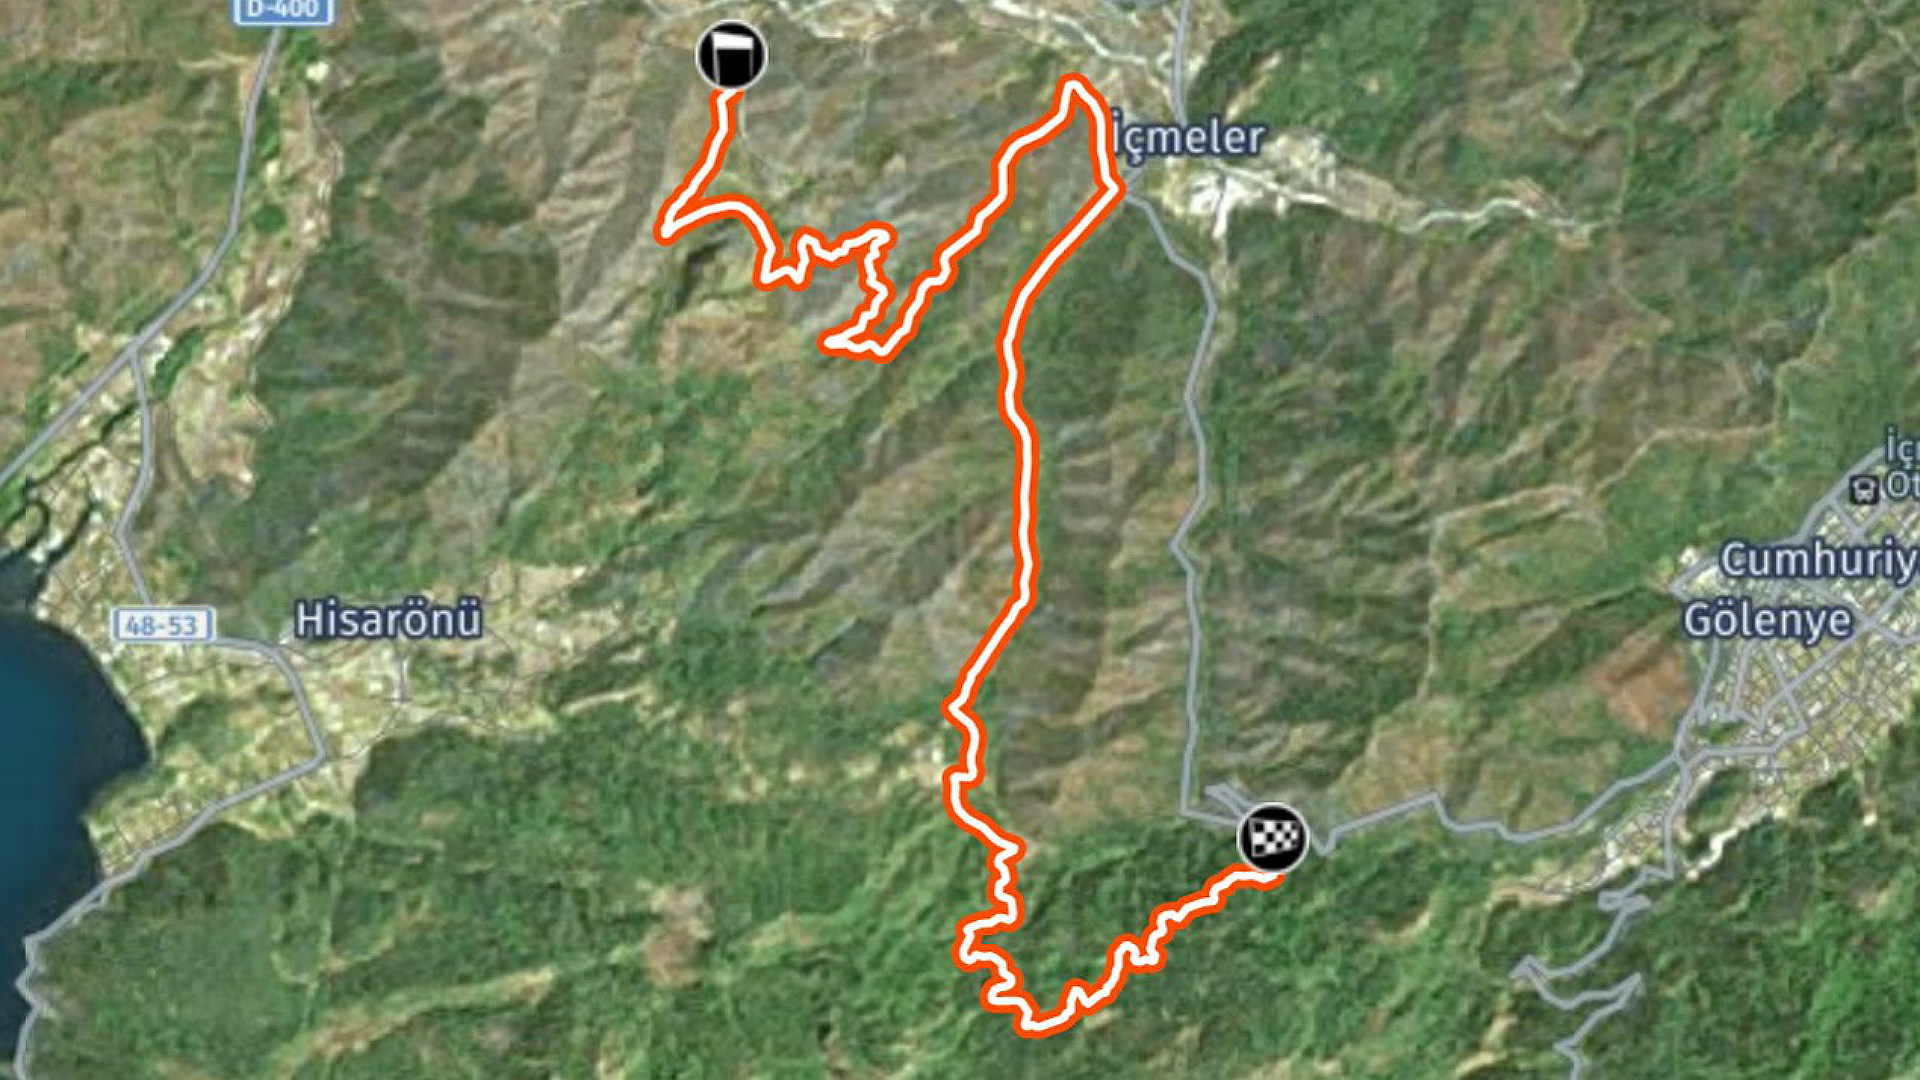 WRC: Marmaris Rally Turkey [18-20 Septiembre] - Página 2 180920_WRC-SS1map-Turkey-2020_001